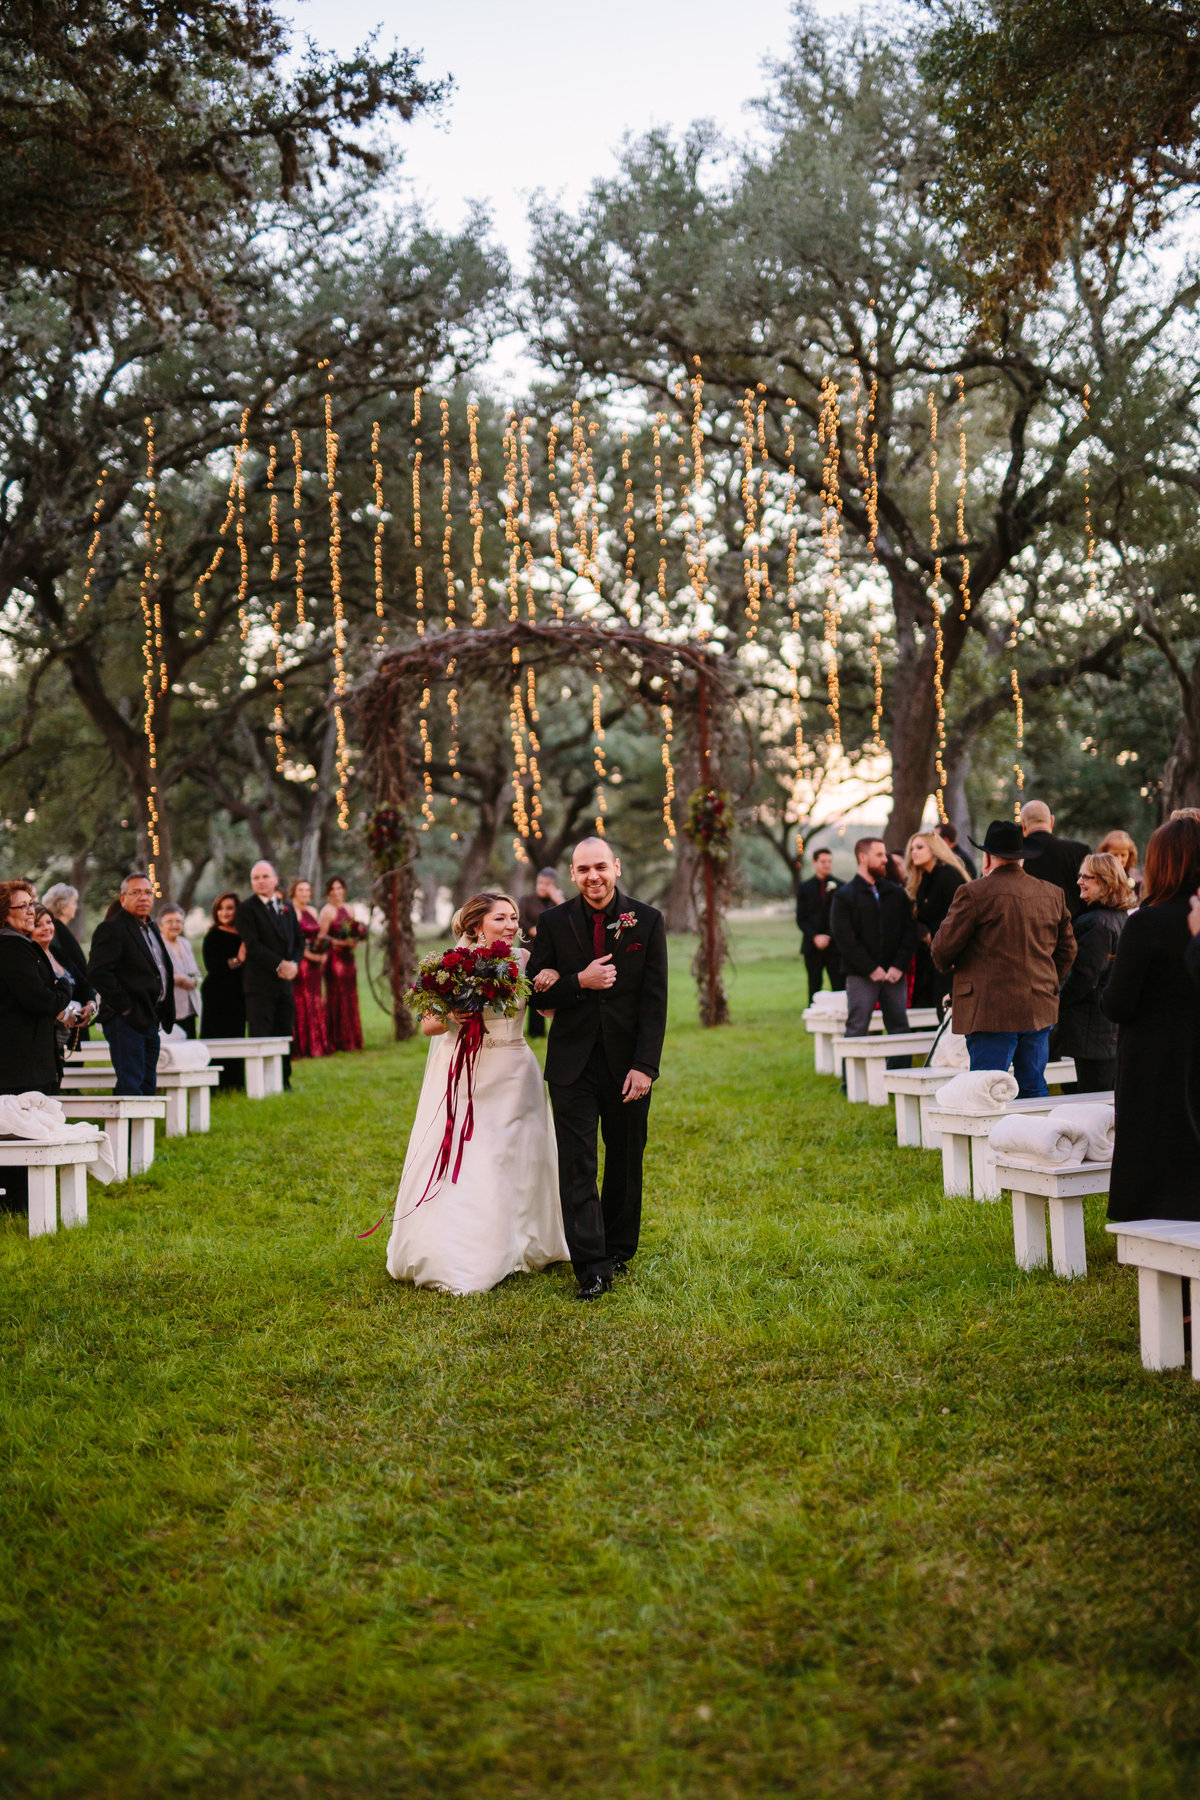 bride and groom exit lit Christmas wedding ceremony site Oaks of Boerne outdoor wedding venue in Texas